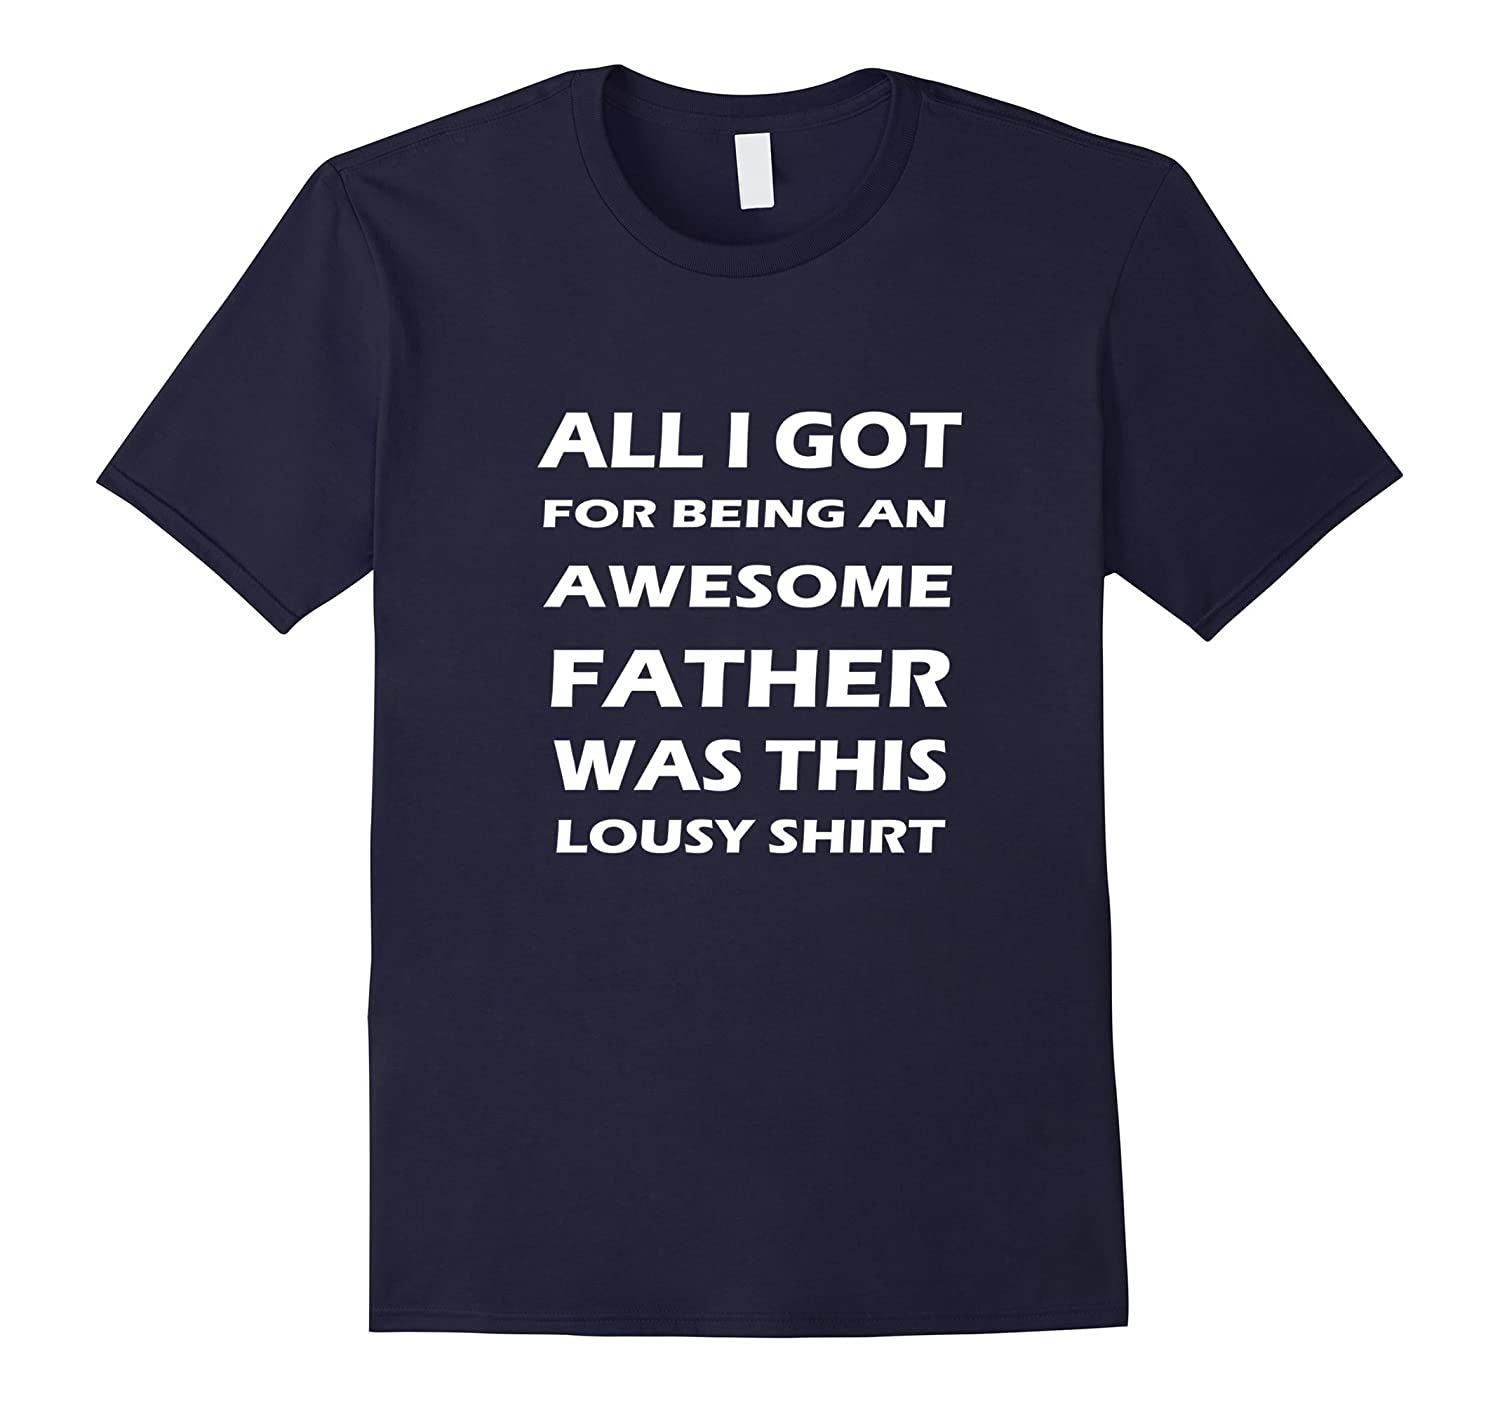 All I got for being an awesome father was this lousy shirt-BN